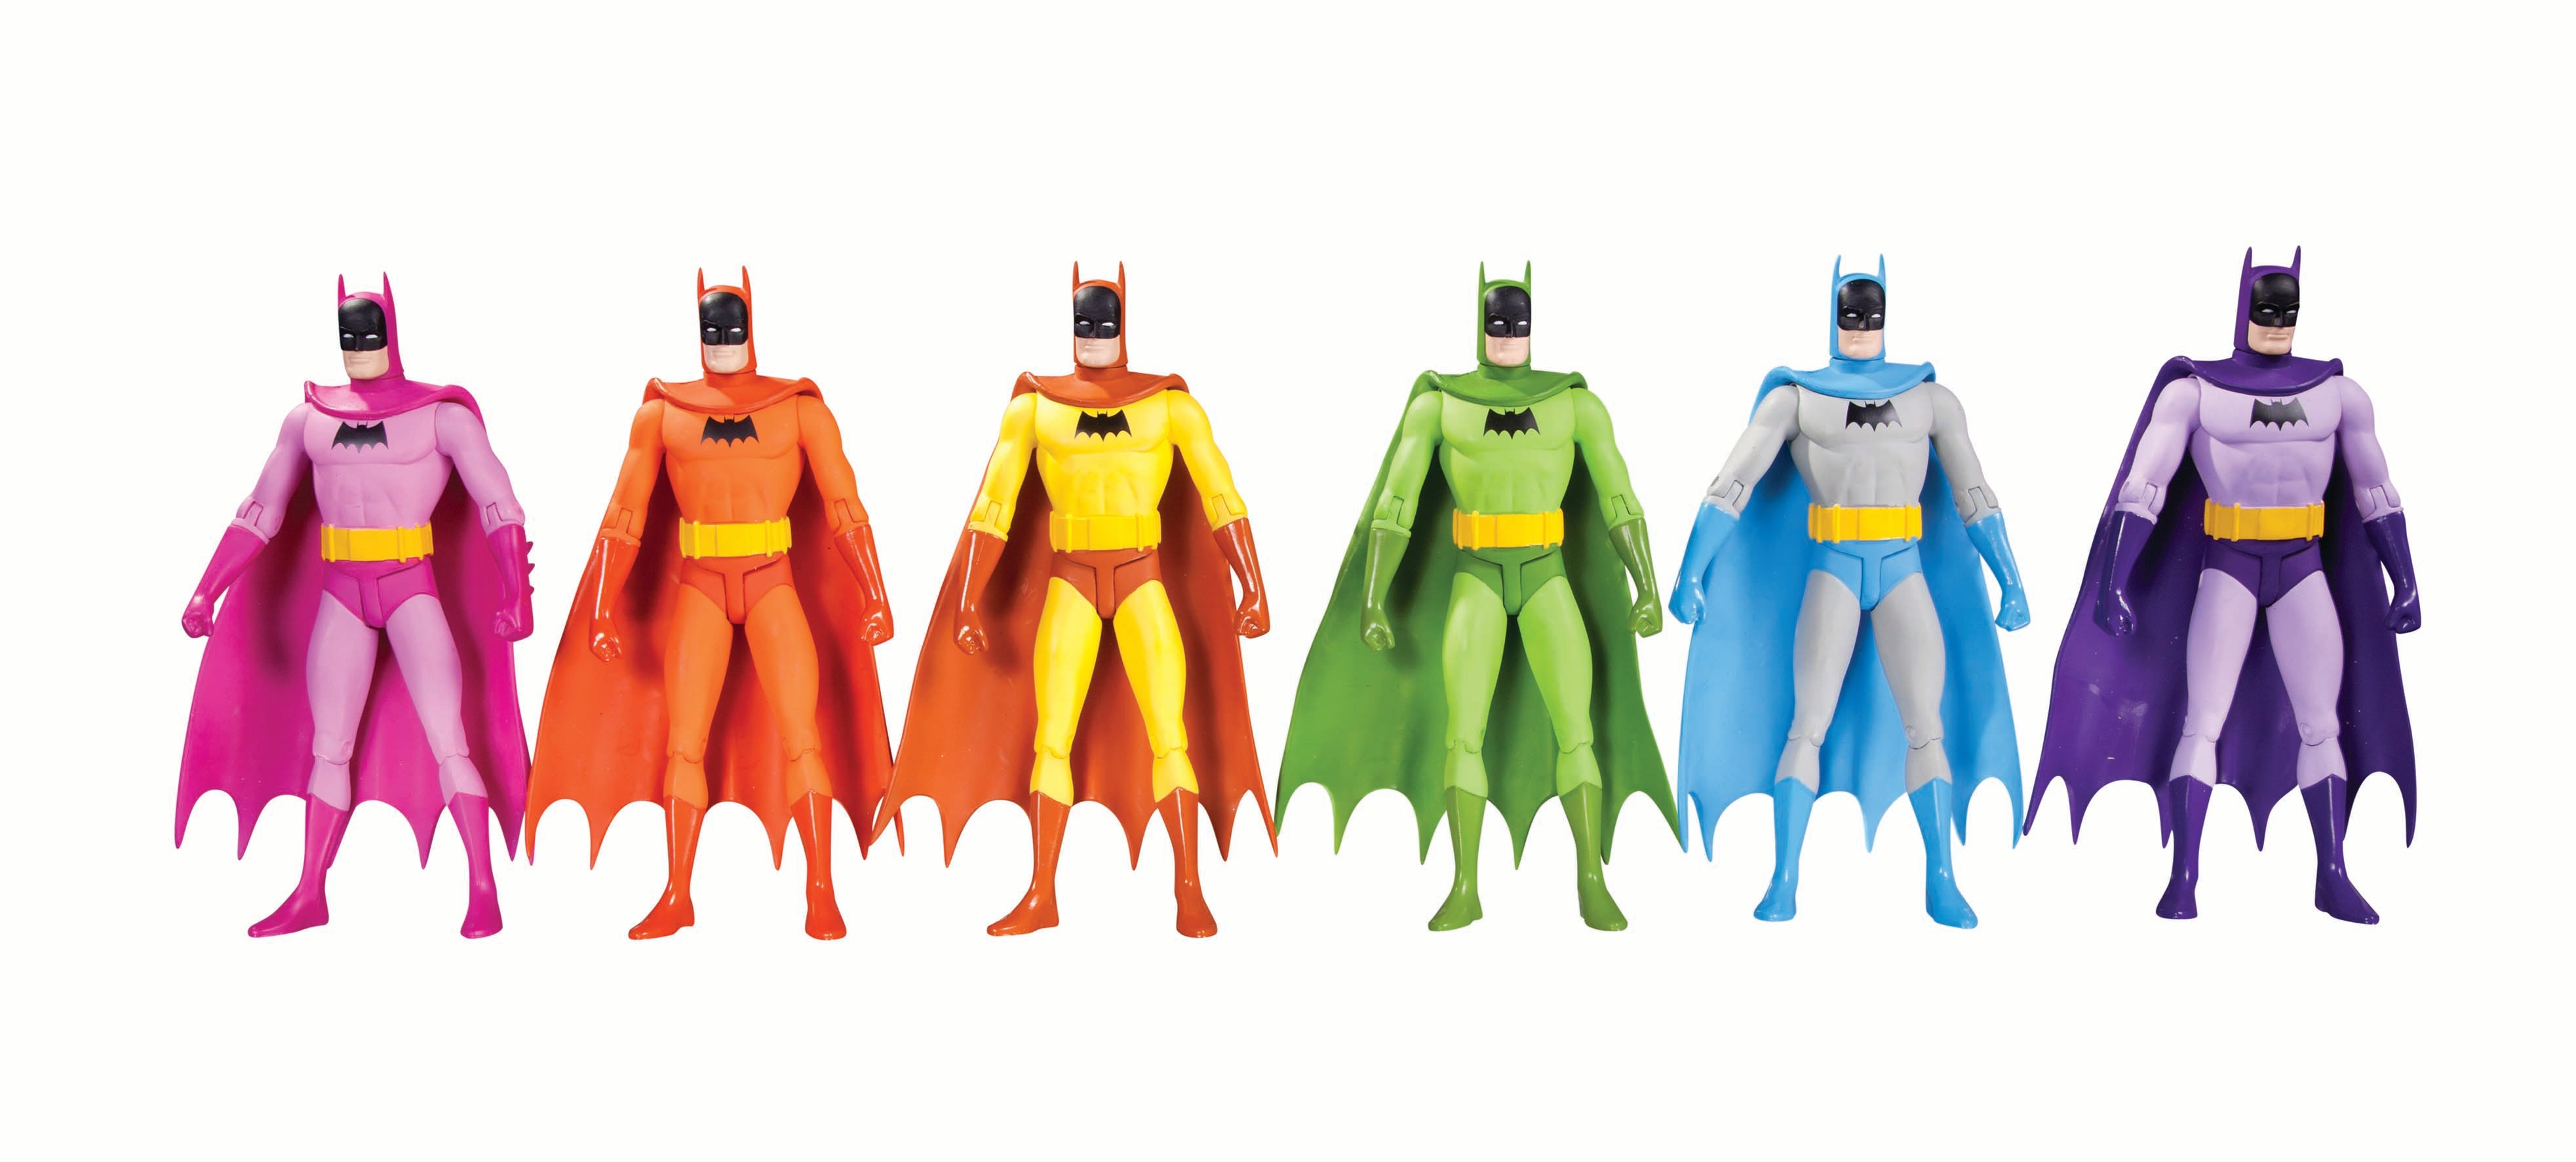 We're Finally Getting Those Rainbow Batman Figures